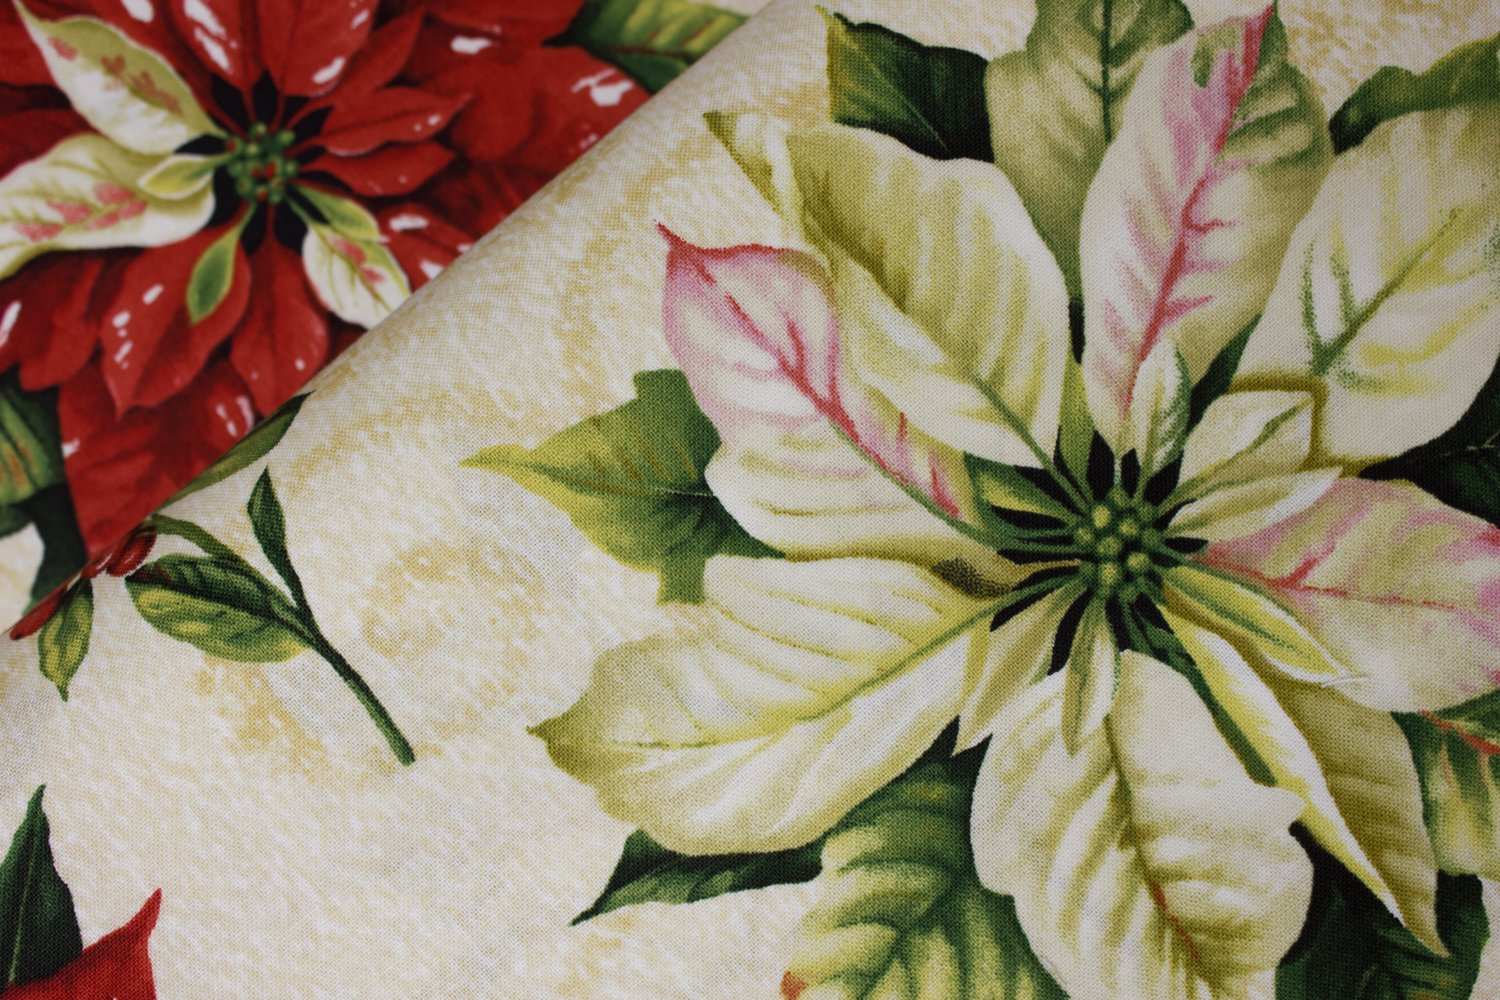 Large Red and White Poinsettias on Cream:  Tis the Season by Wilmington Prints, 57-58 wide